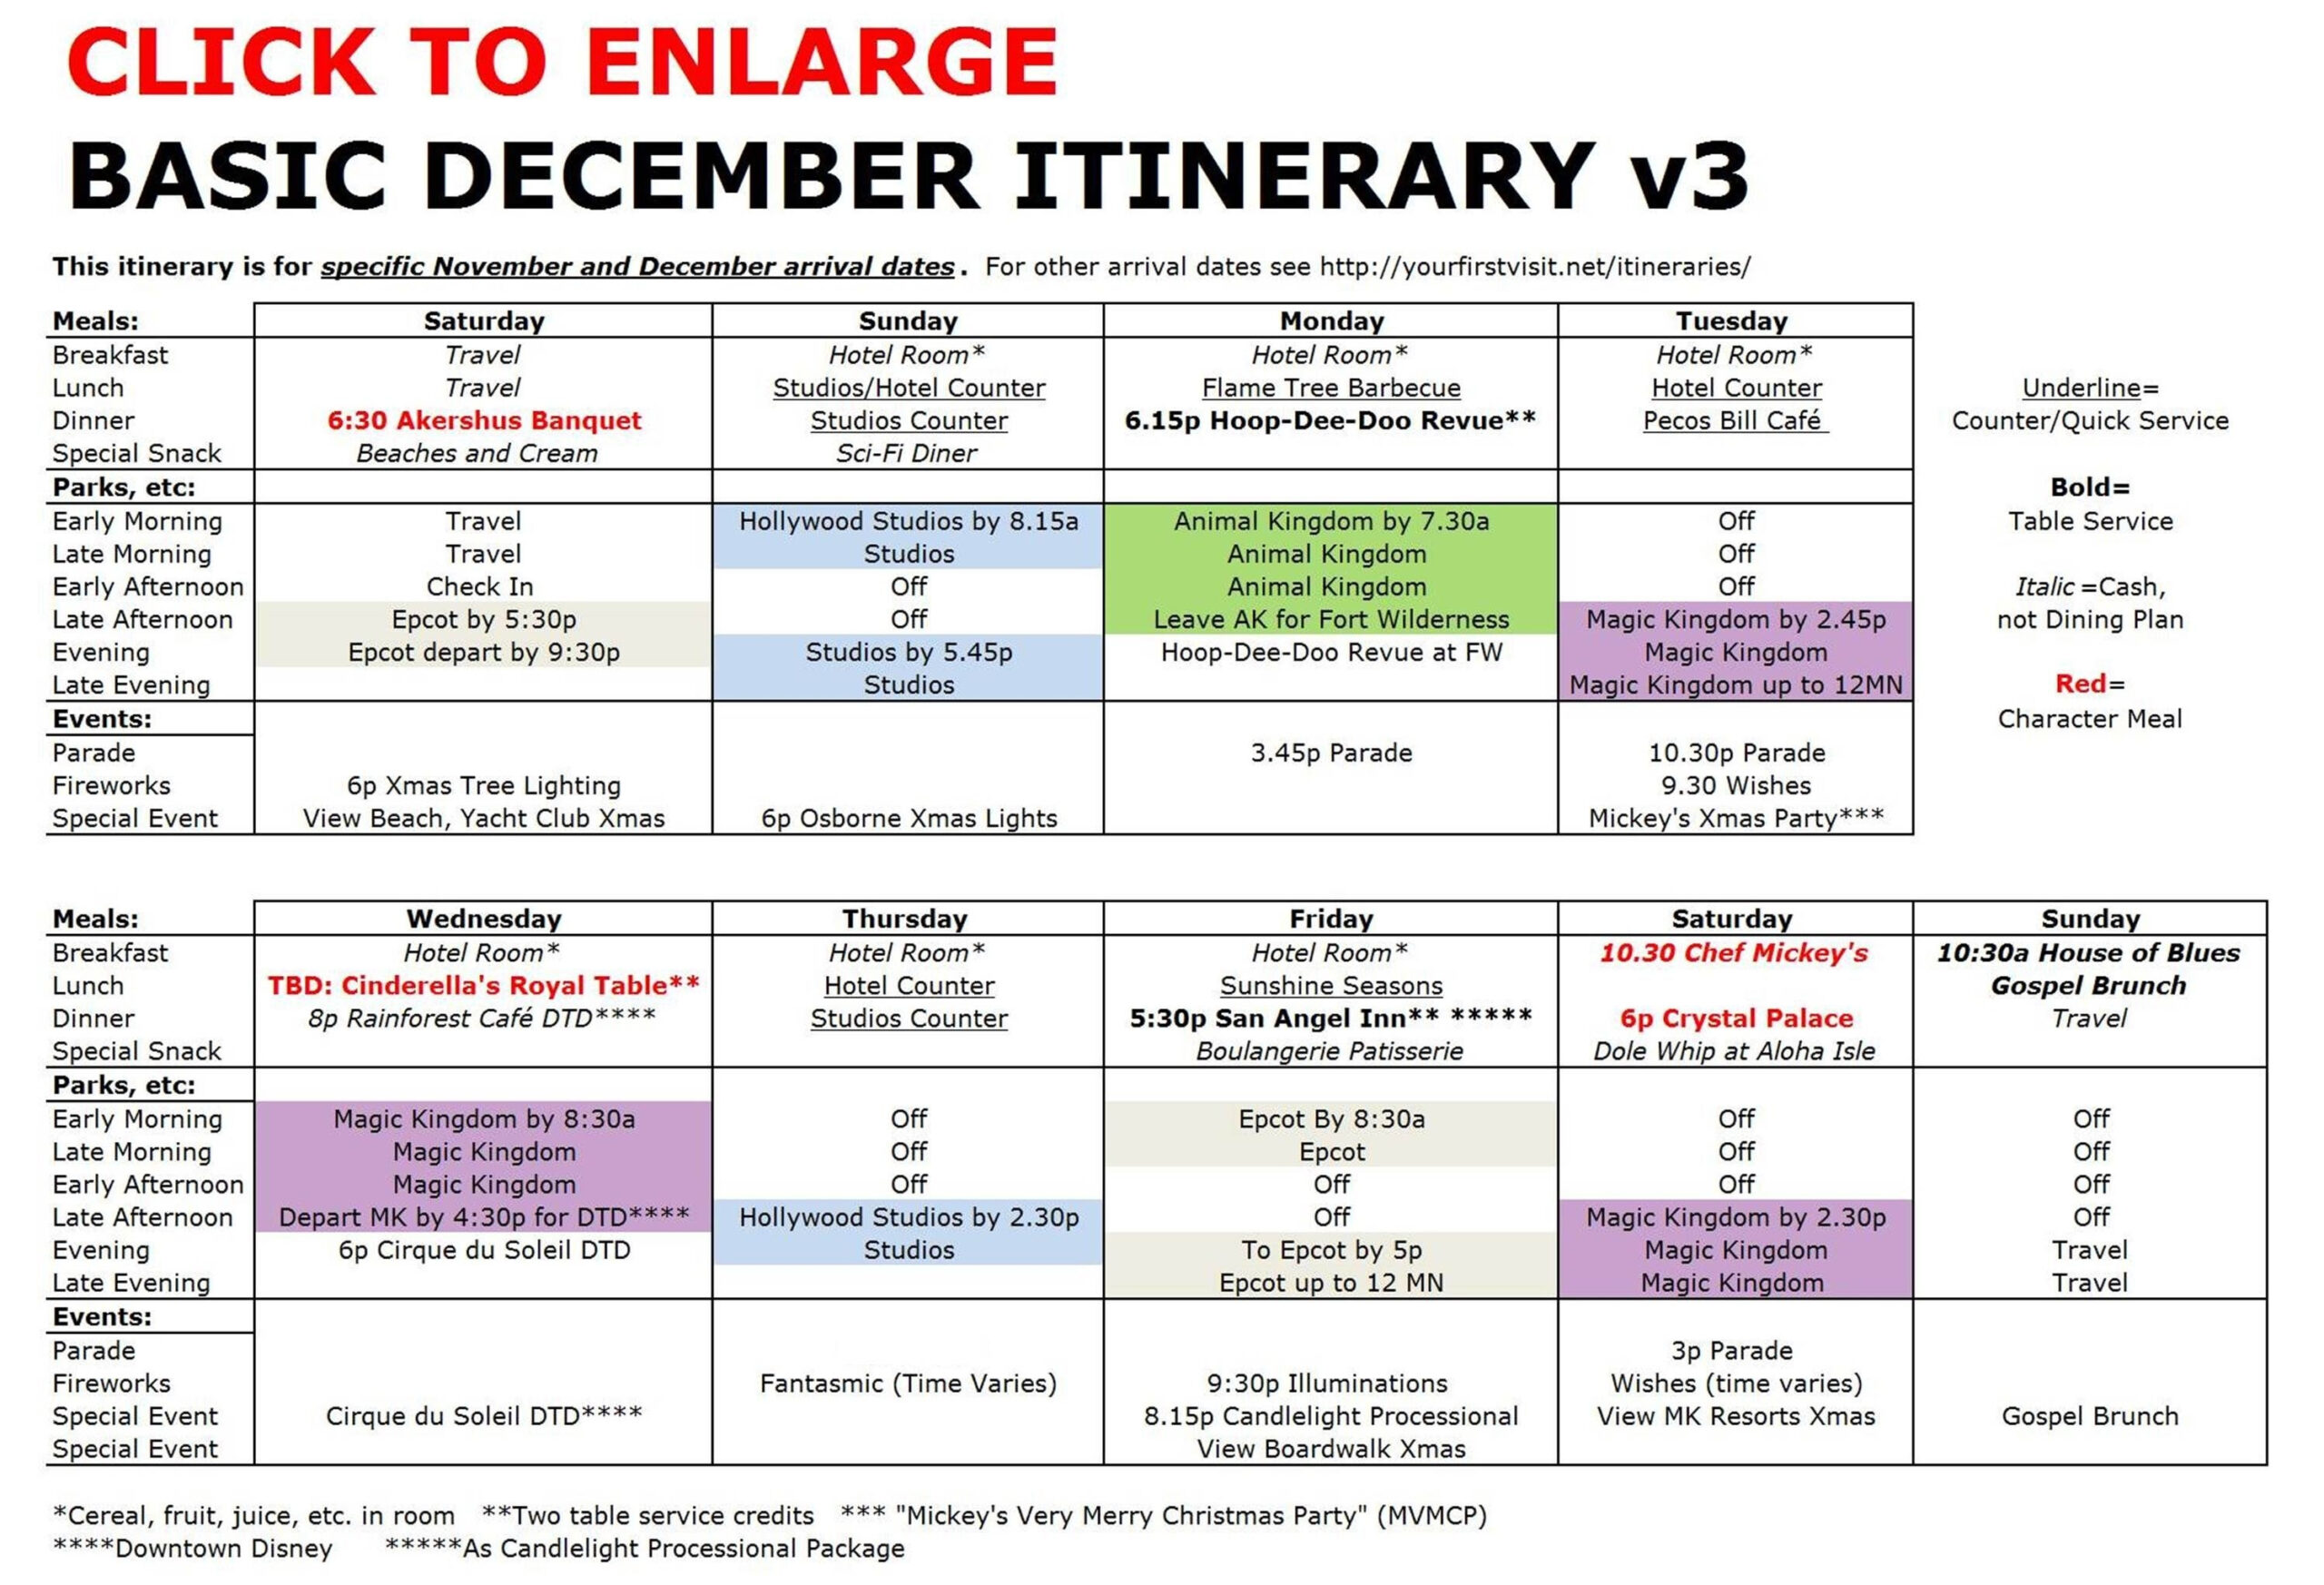 Disney Free Itinerary Template | Calendar Template Printable throughout Disneyland Itinerary Template